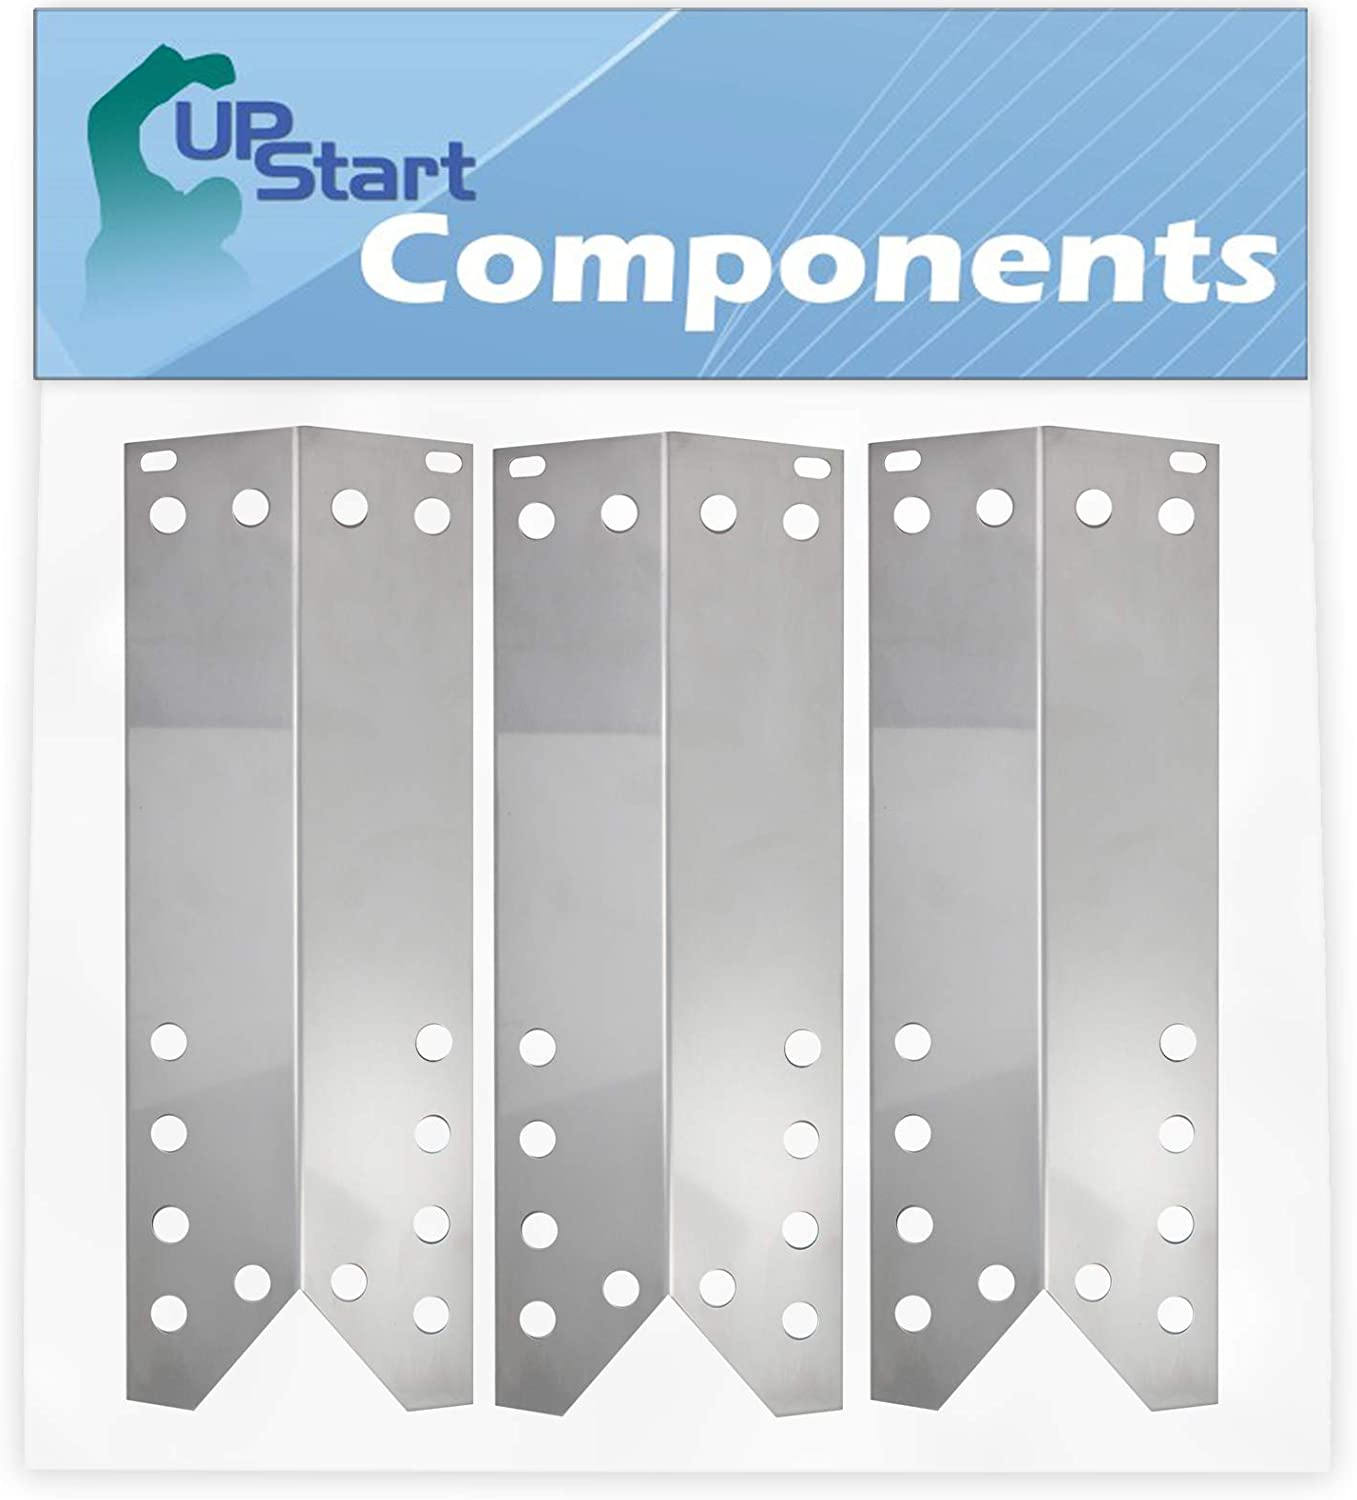 3-Pack Discount is also underway BBQ Grill Heat Shield Plate Ne Parts Tent Replacement Super sale period limited for